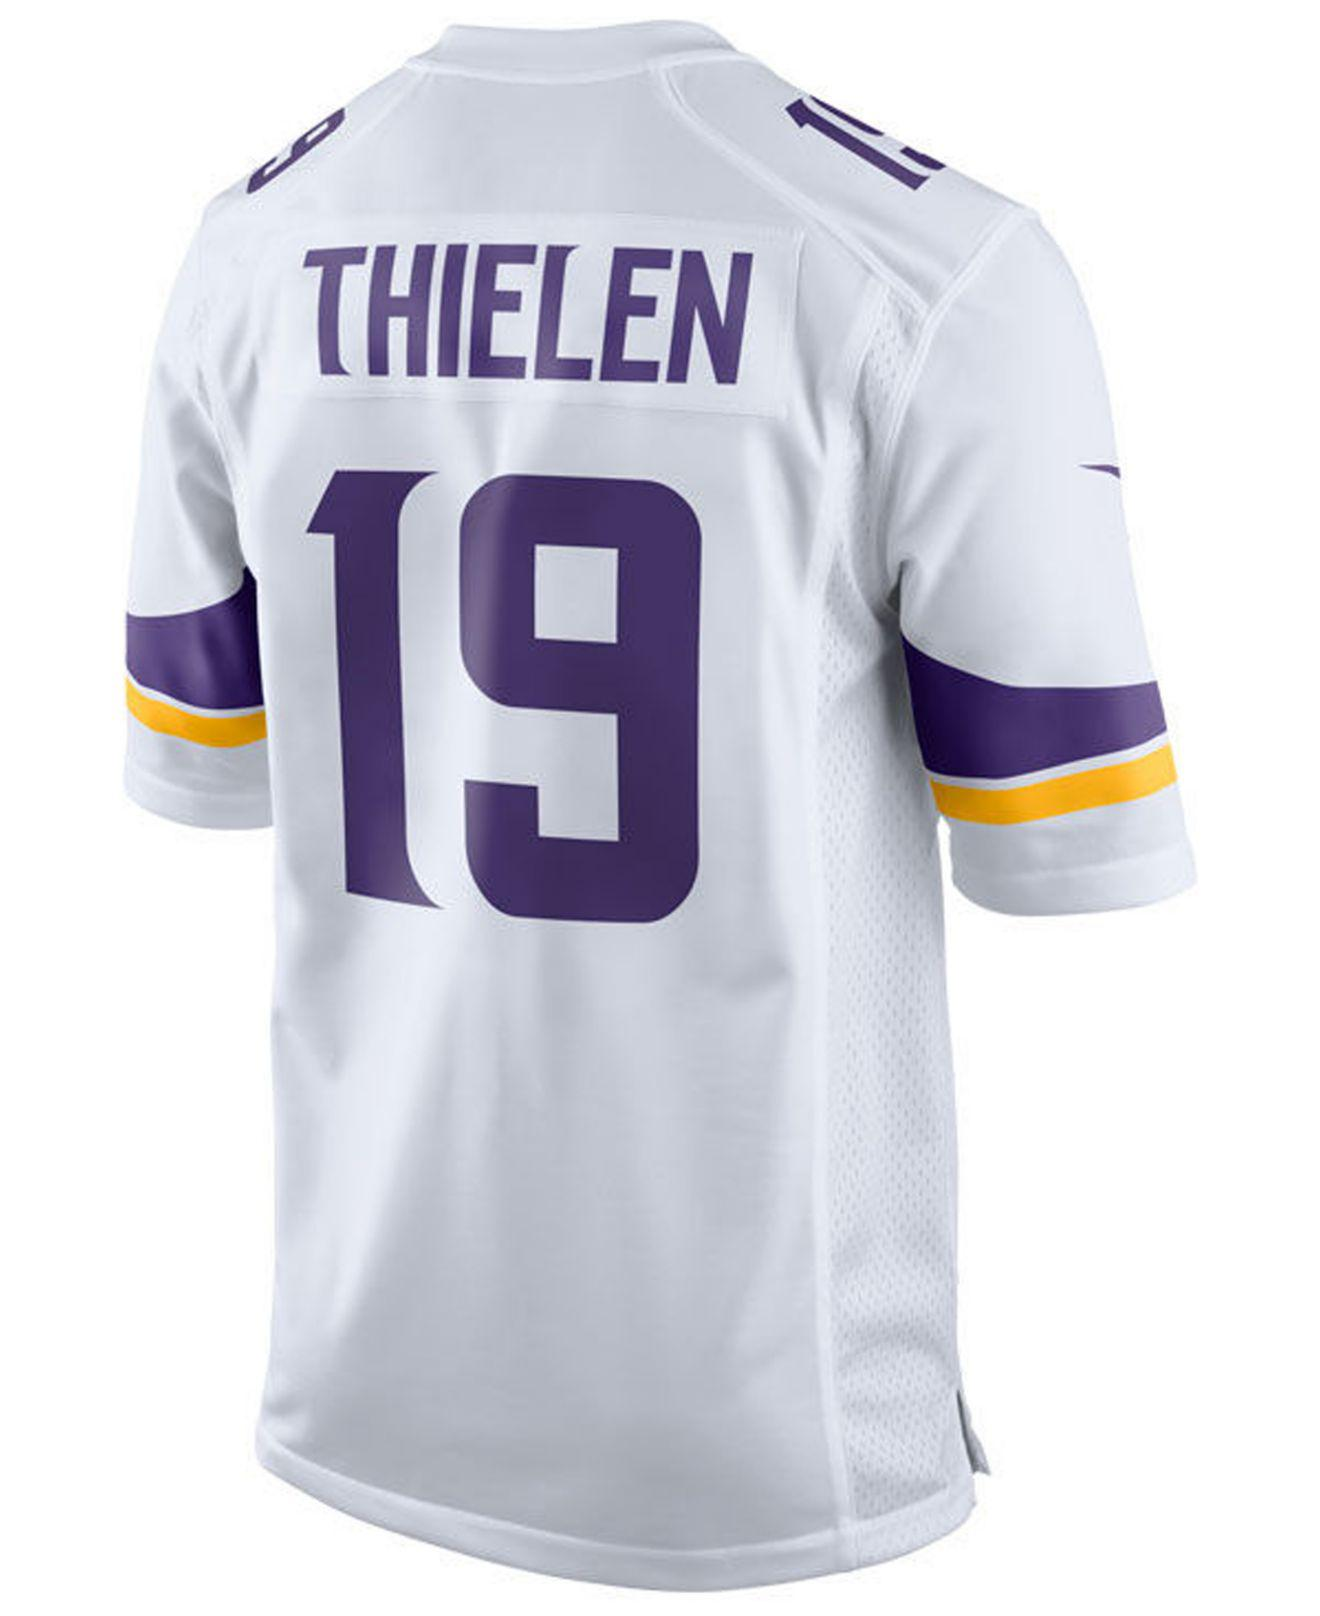 Lyst - Nike Adam Thielen Minnesota Vikings Game Jersey in White for Men 0773e8205